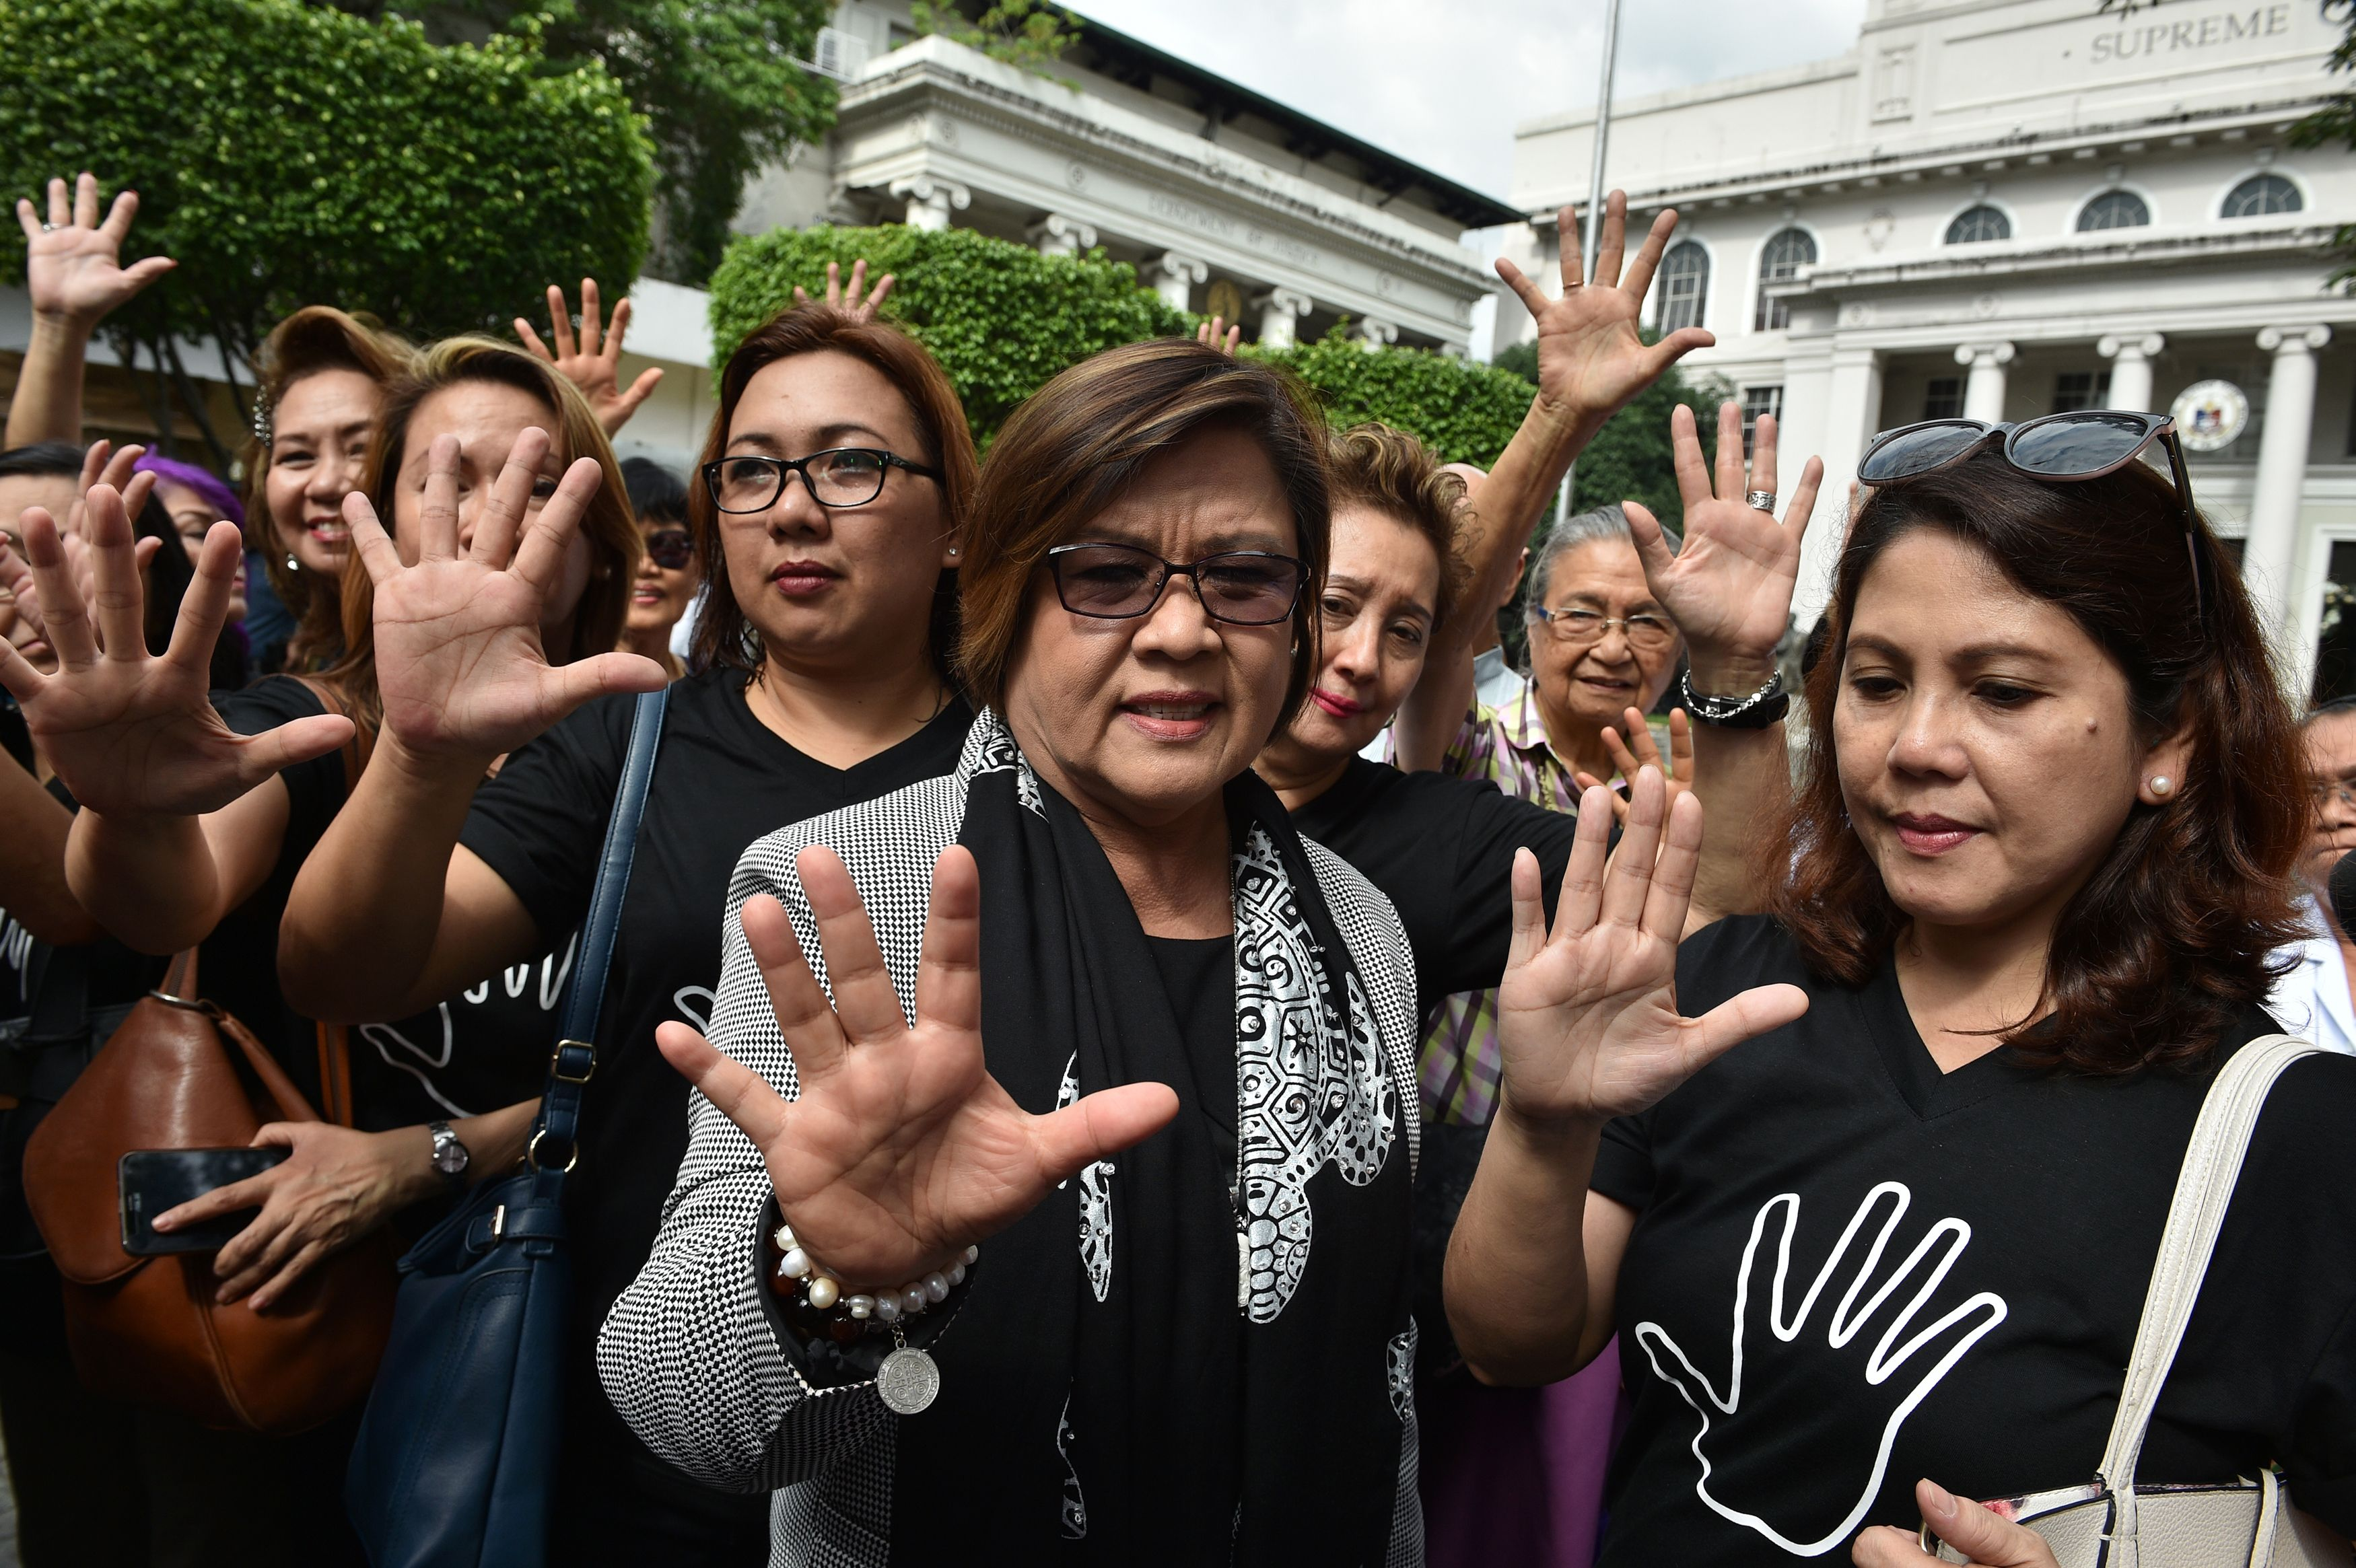 Senator Leila de Lima, center, gestures with supporters after filing her petition for habeas data against Philippine President Rodrigo Duterte at the Supreme Court in Manila on Nov. 7, 2016. De Lima, former Justice Secretary who is a leading critic of Duterte's war on drugs, launched a Senate probe into the surge of killings since Duterte took office on June 30, which led to her being ousted on Sept. 19 by pro-Duterte Senators as head of the Senate justice committee.